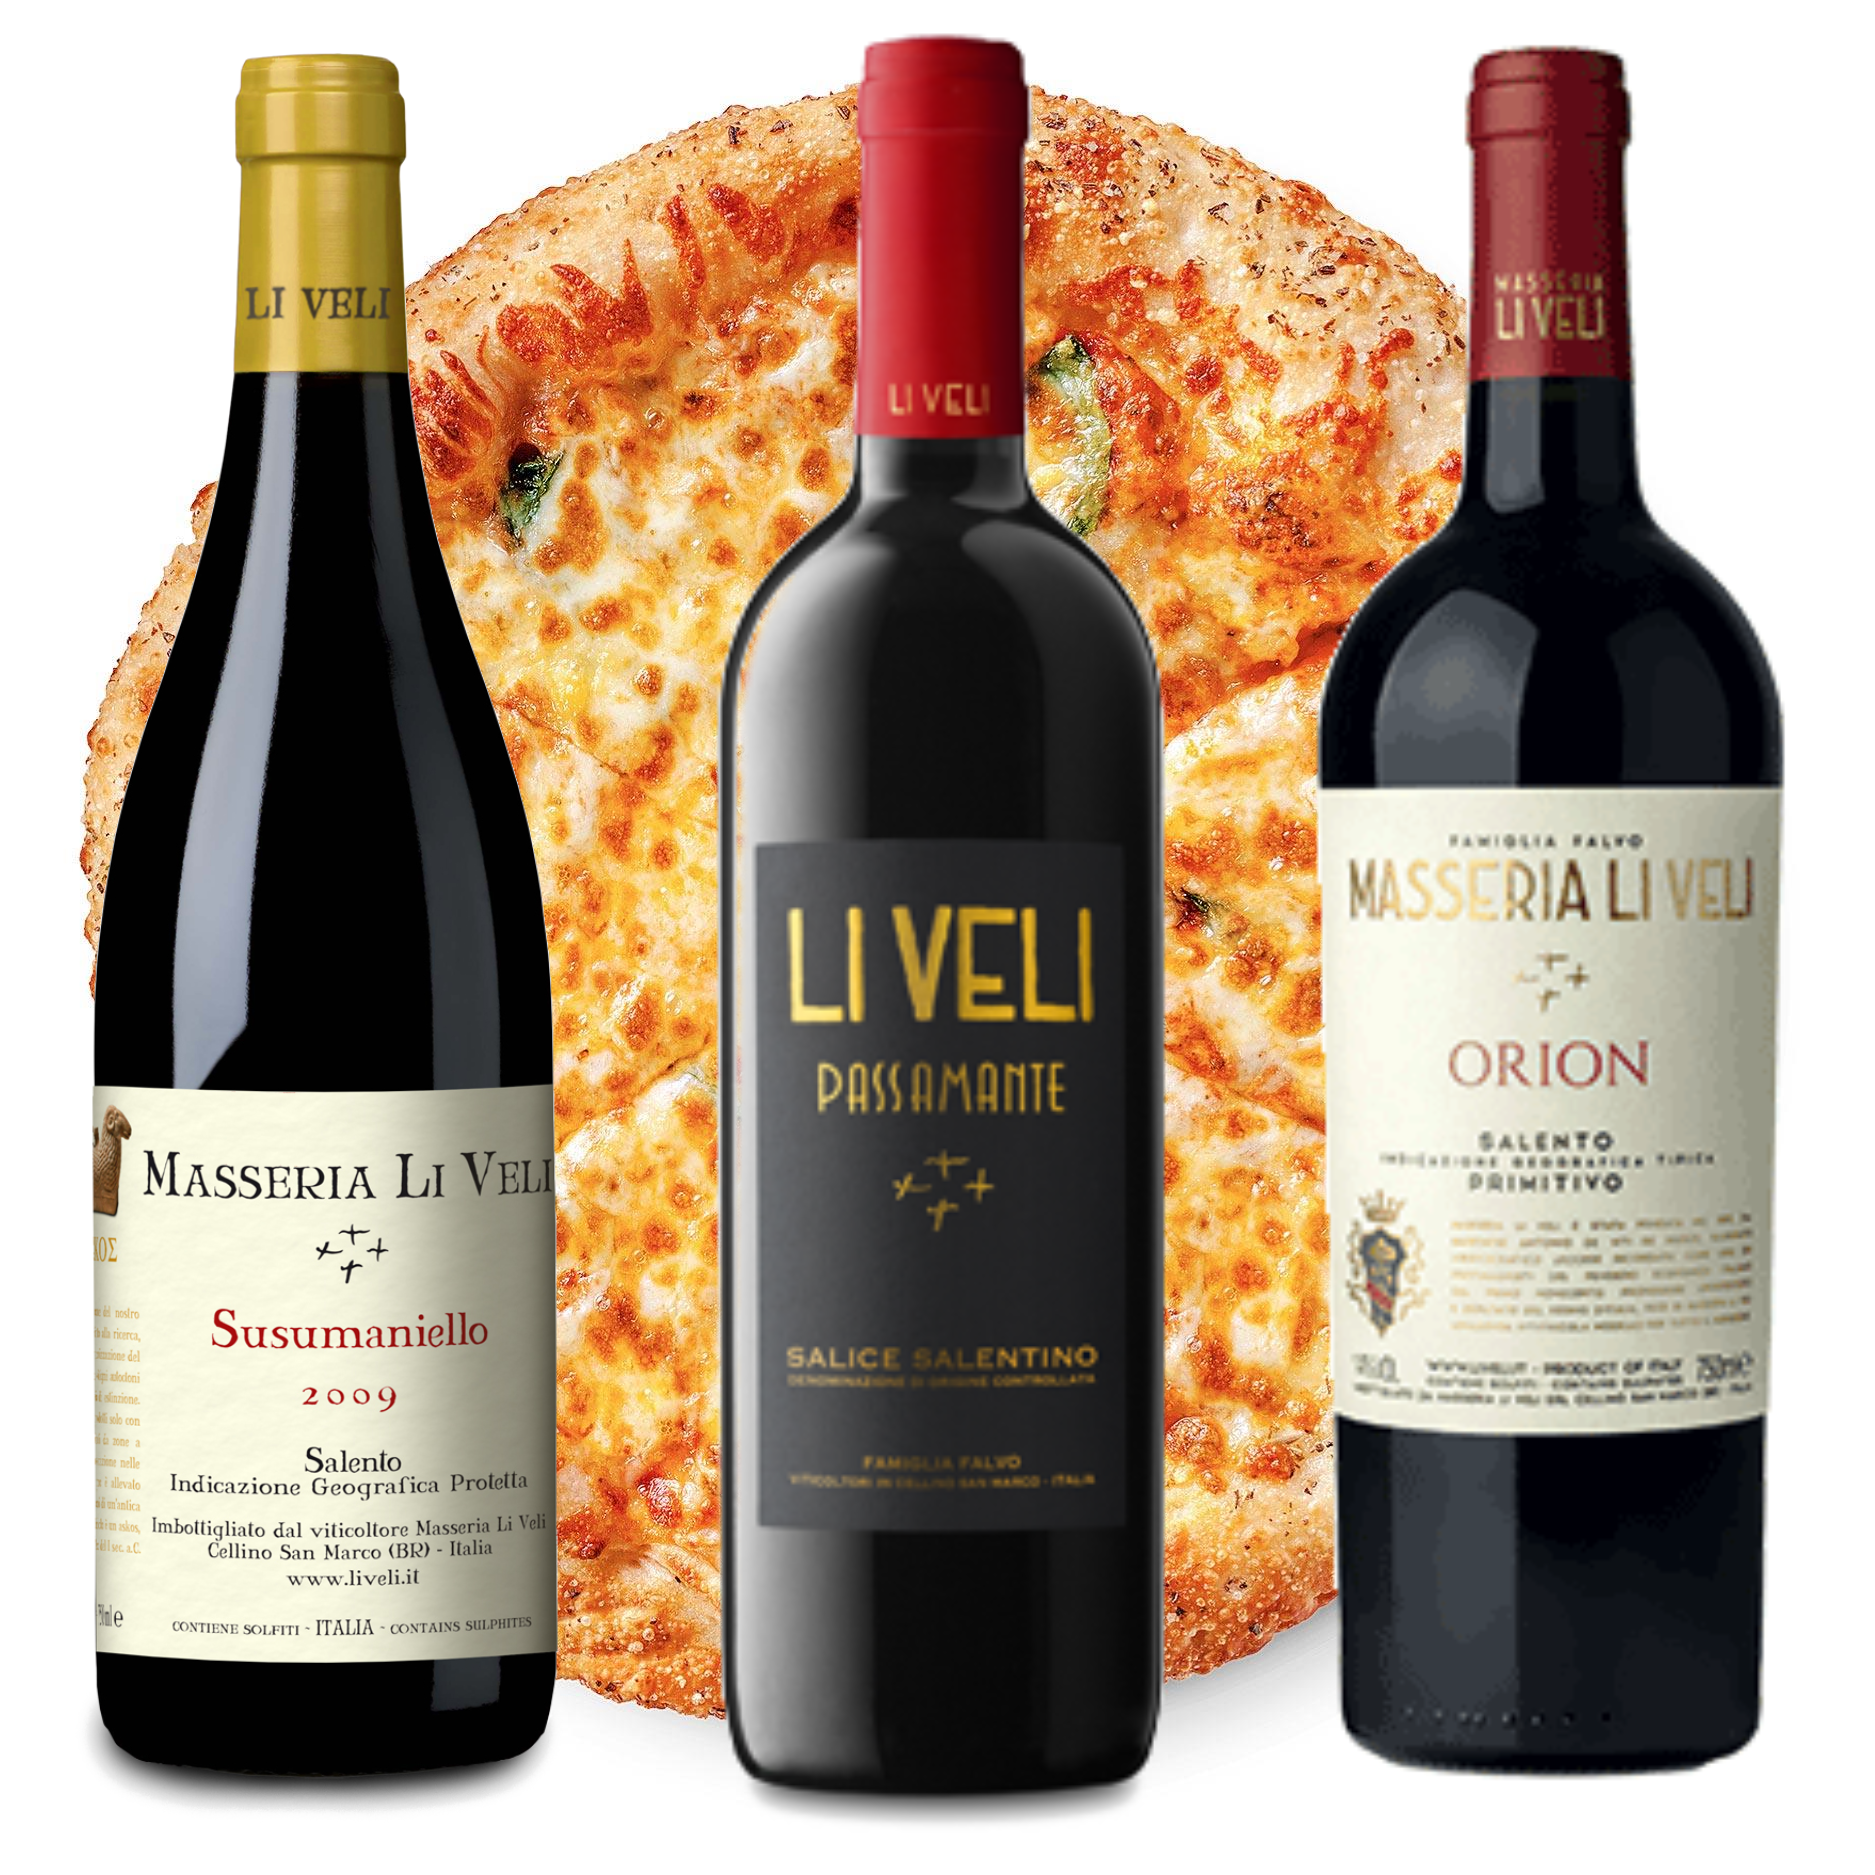 Going for pizza? Pick any of these 10 great wines.